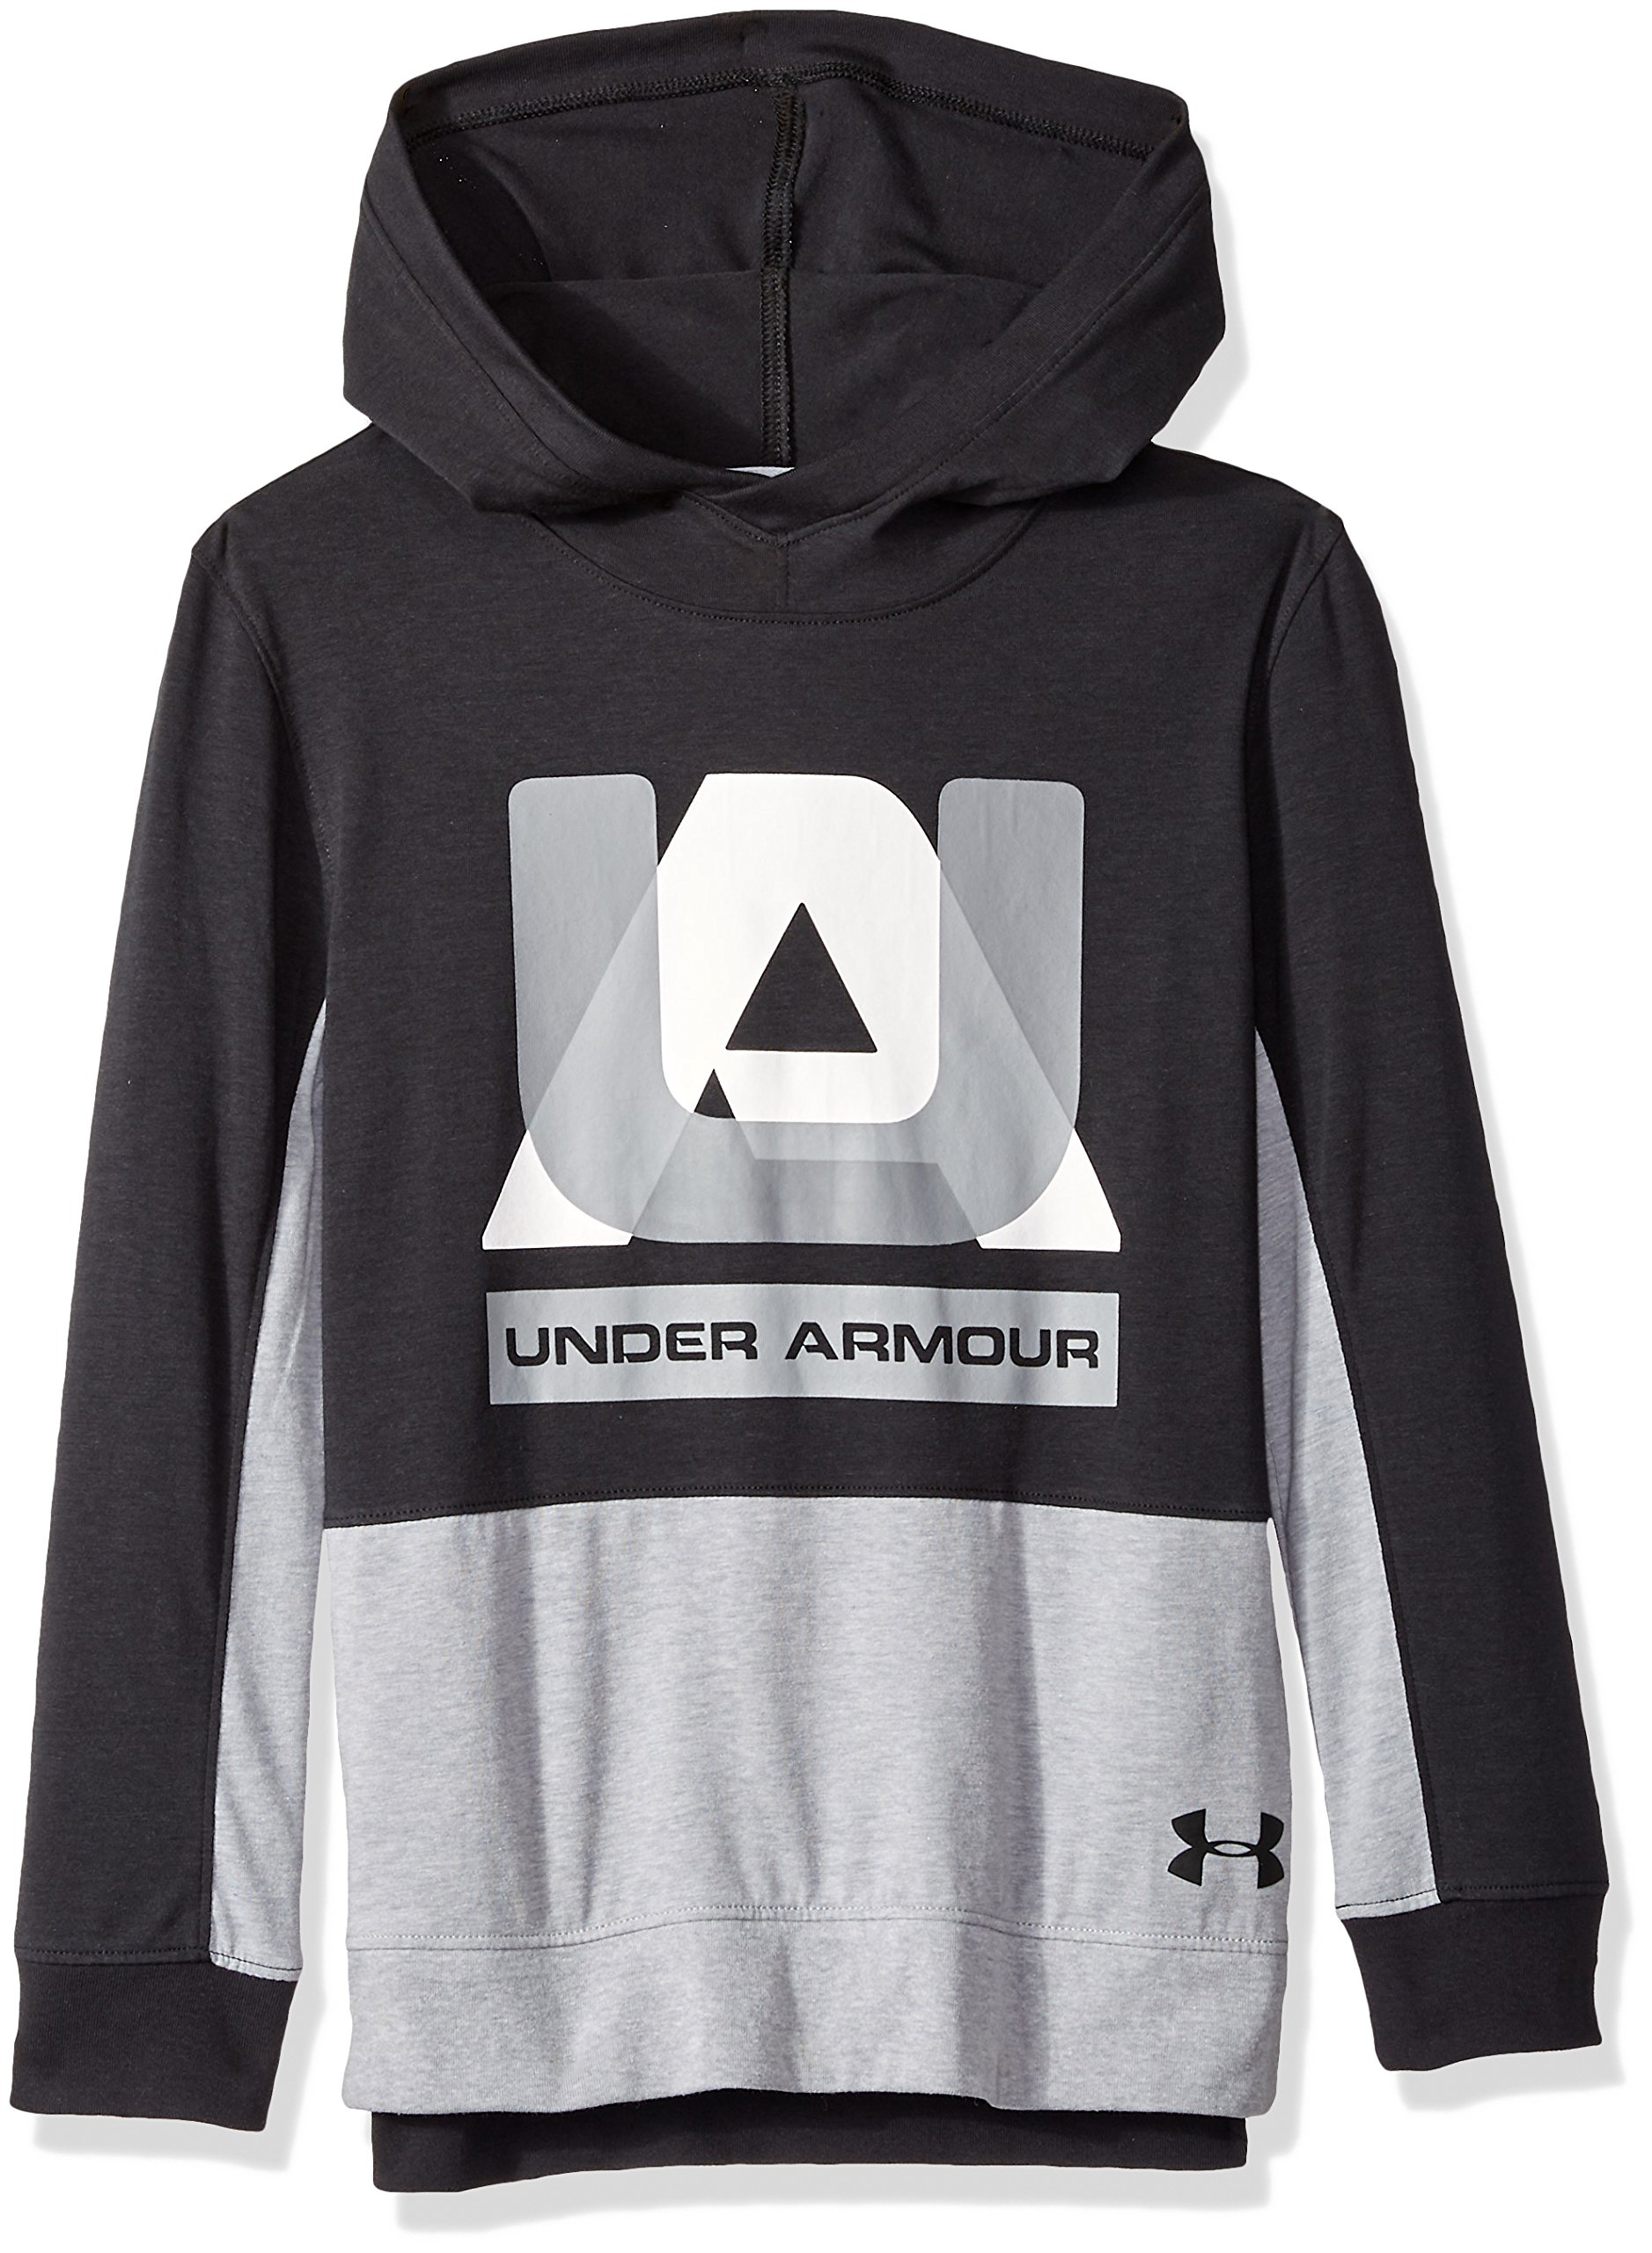 Under Armour Boys sportstyle Hoodie, Black (001)/Black, Youth X-Large by Under Armour